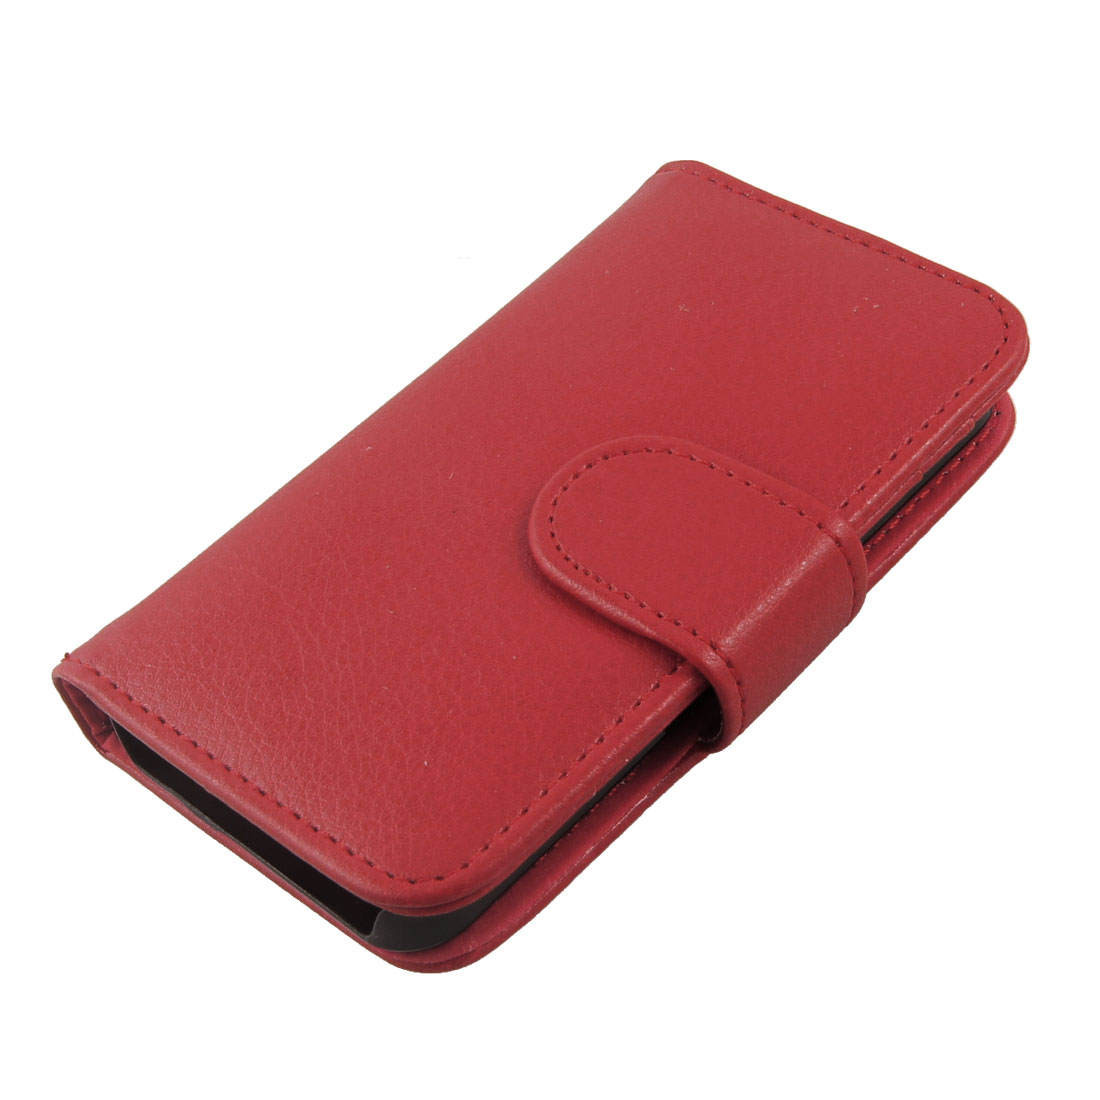 Faux Leather Coated Red Magnetic Closure Case Cover for iPhone 4 4S